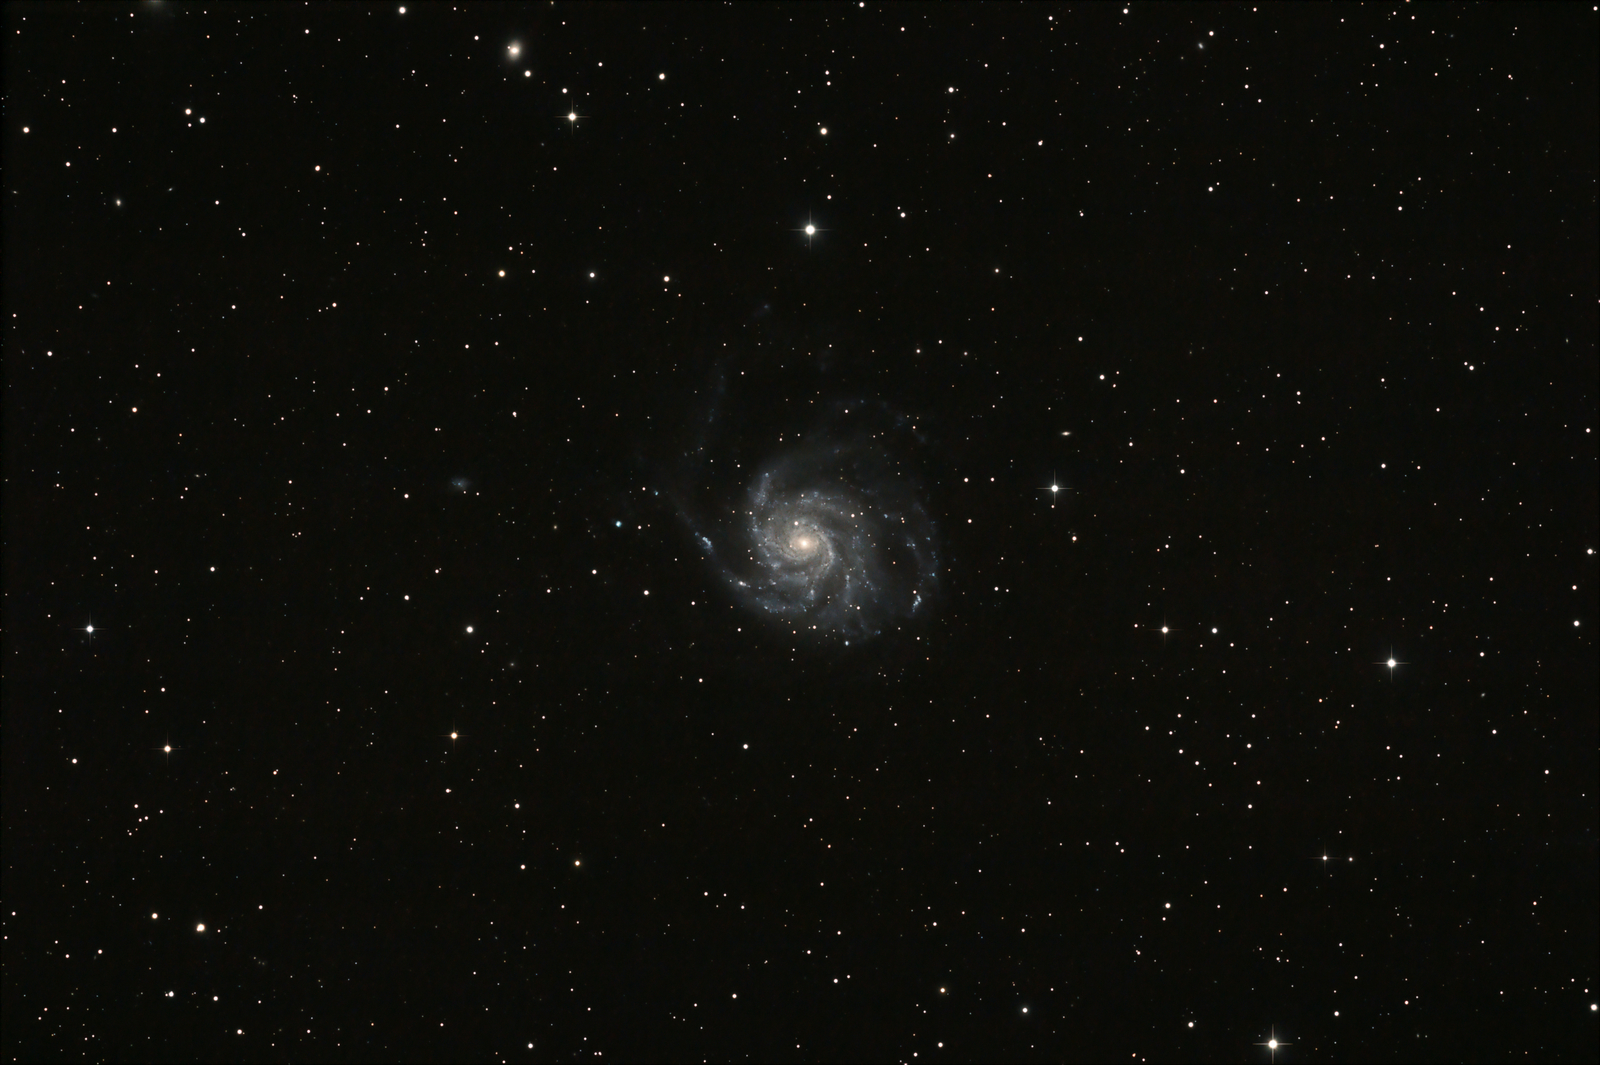 M101_1x1_11hr_30mins_draft_dark+_light_core